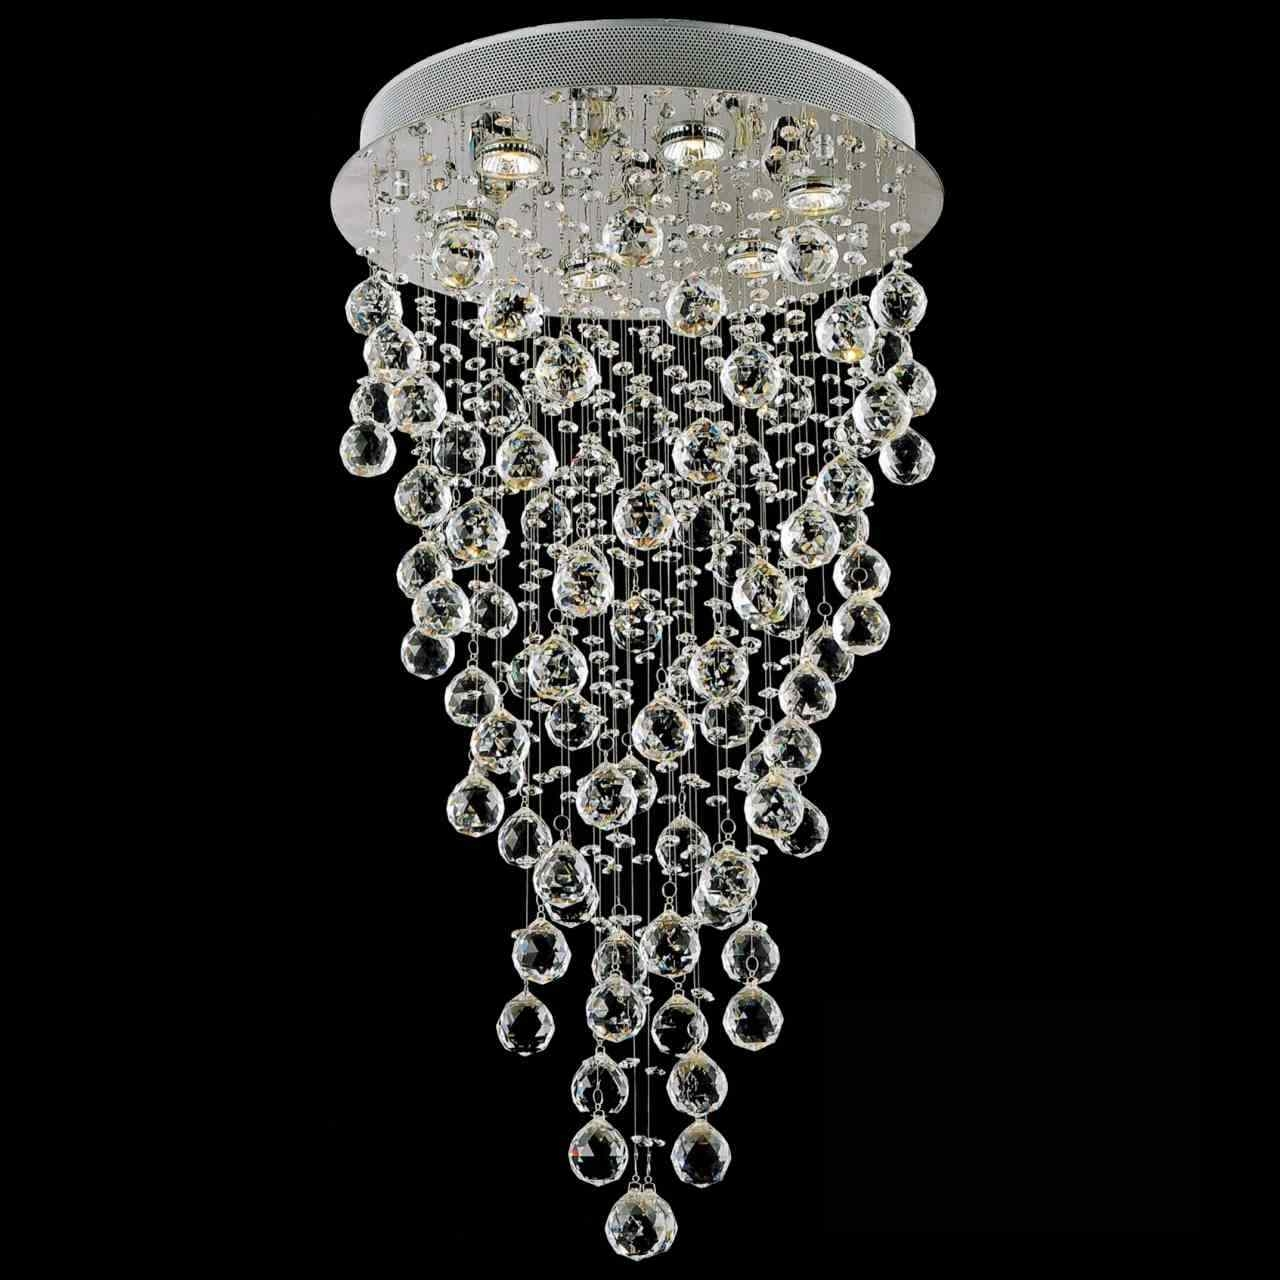 Brizzo Lighting Stores Large Size Throughout Chandelier Mirror (Image 6 of 15)